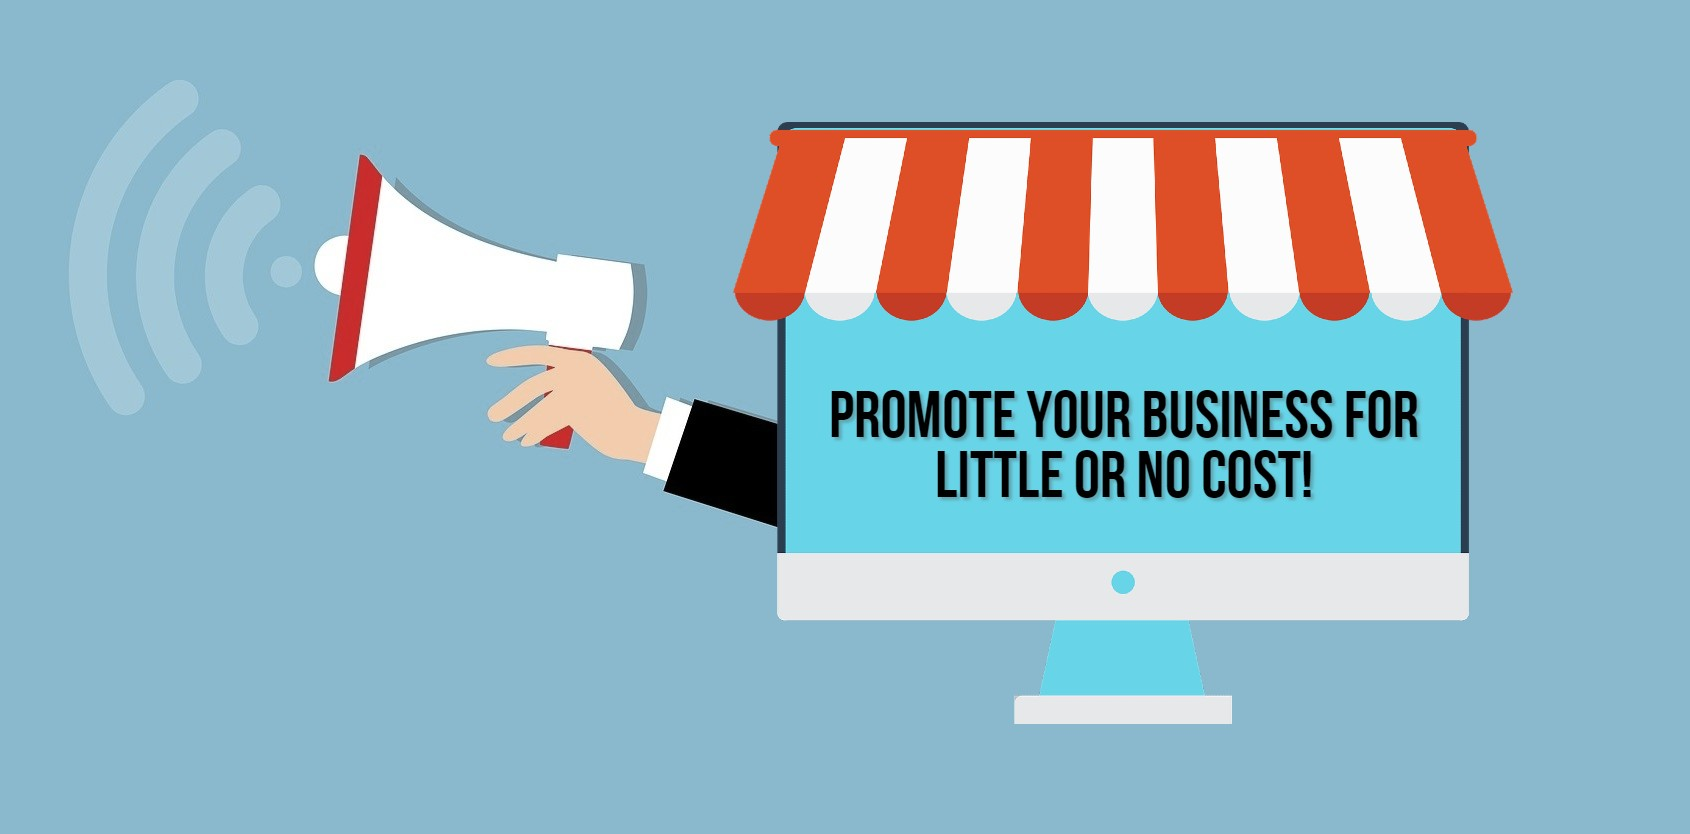 5 Ways To Promote Your Business For Little Or No Cost!